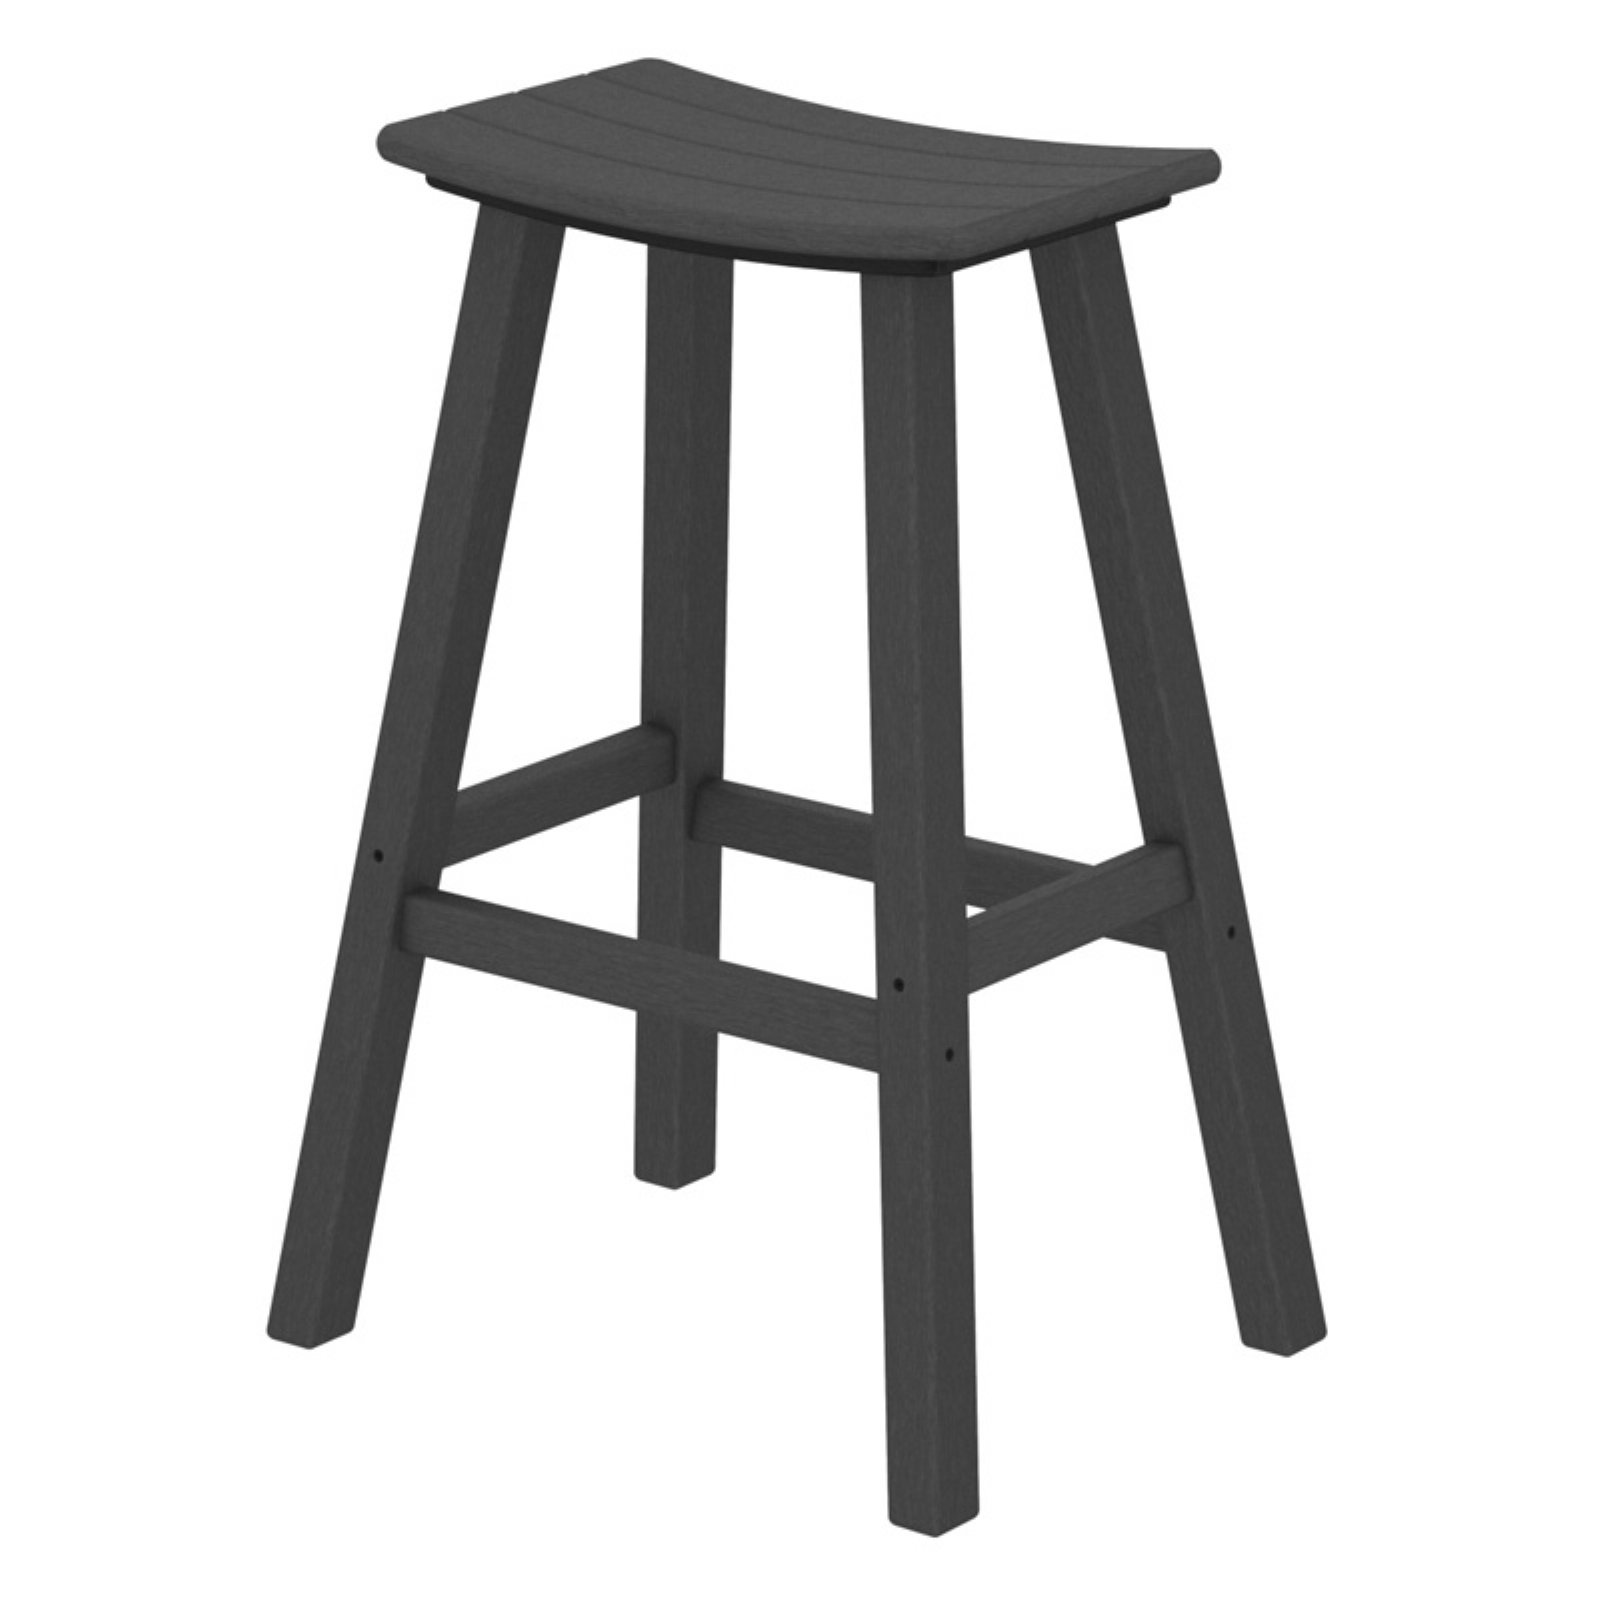 POLYWOOD Traditional 30 in. Saddle Bar Stool by Polywood